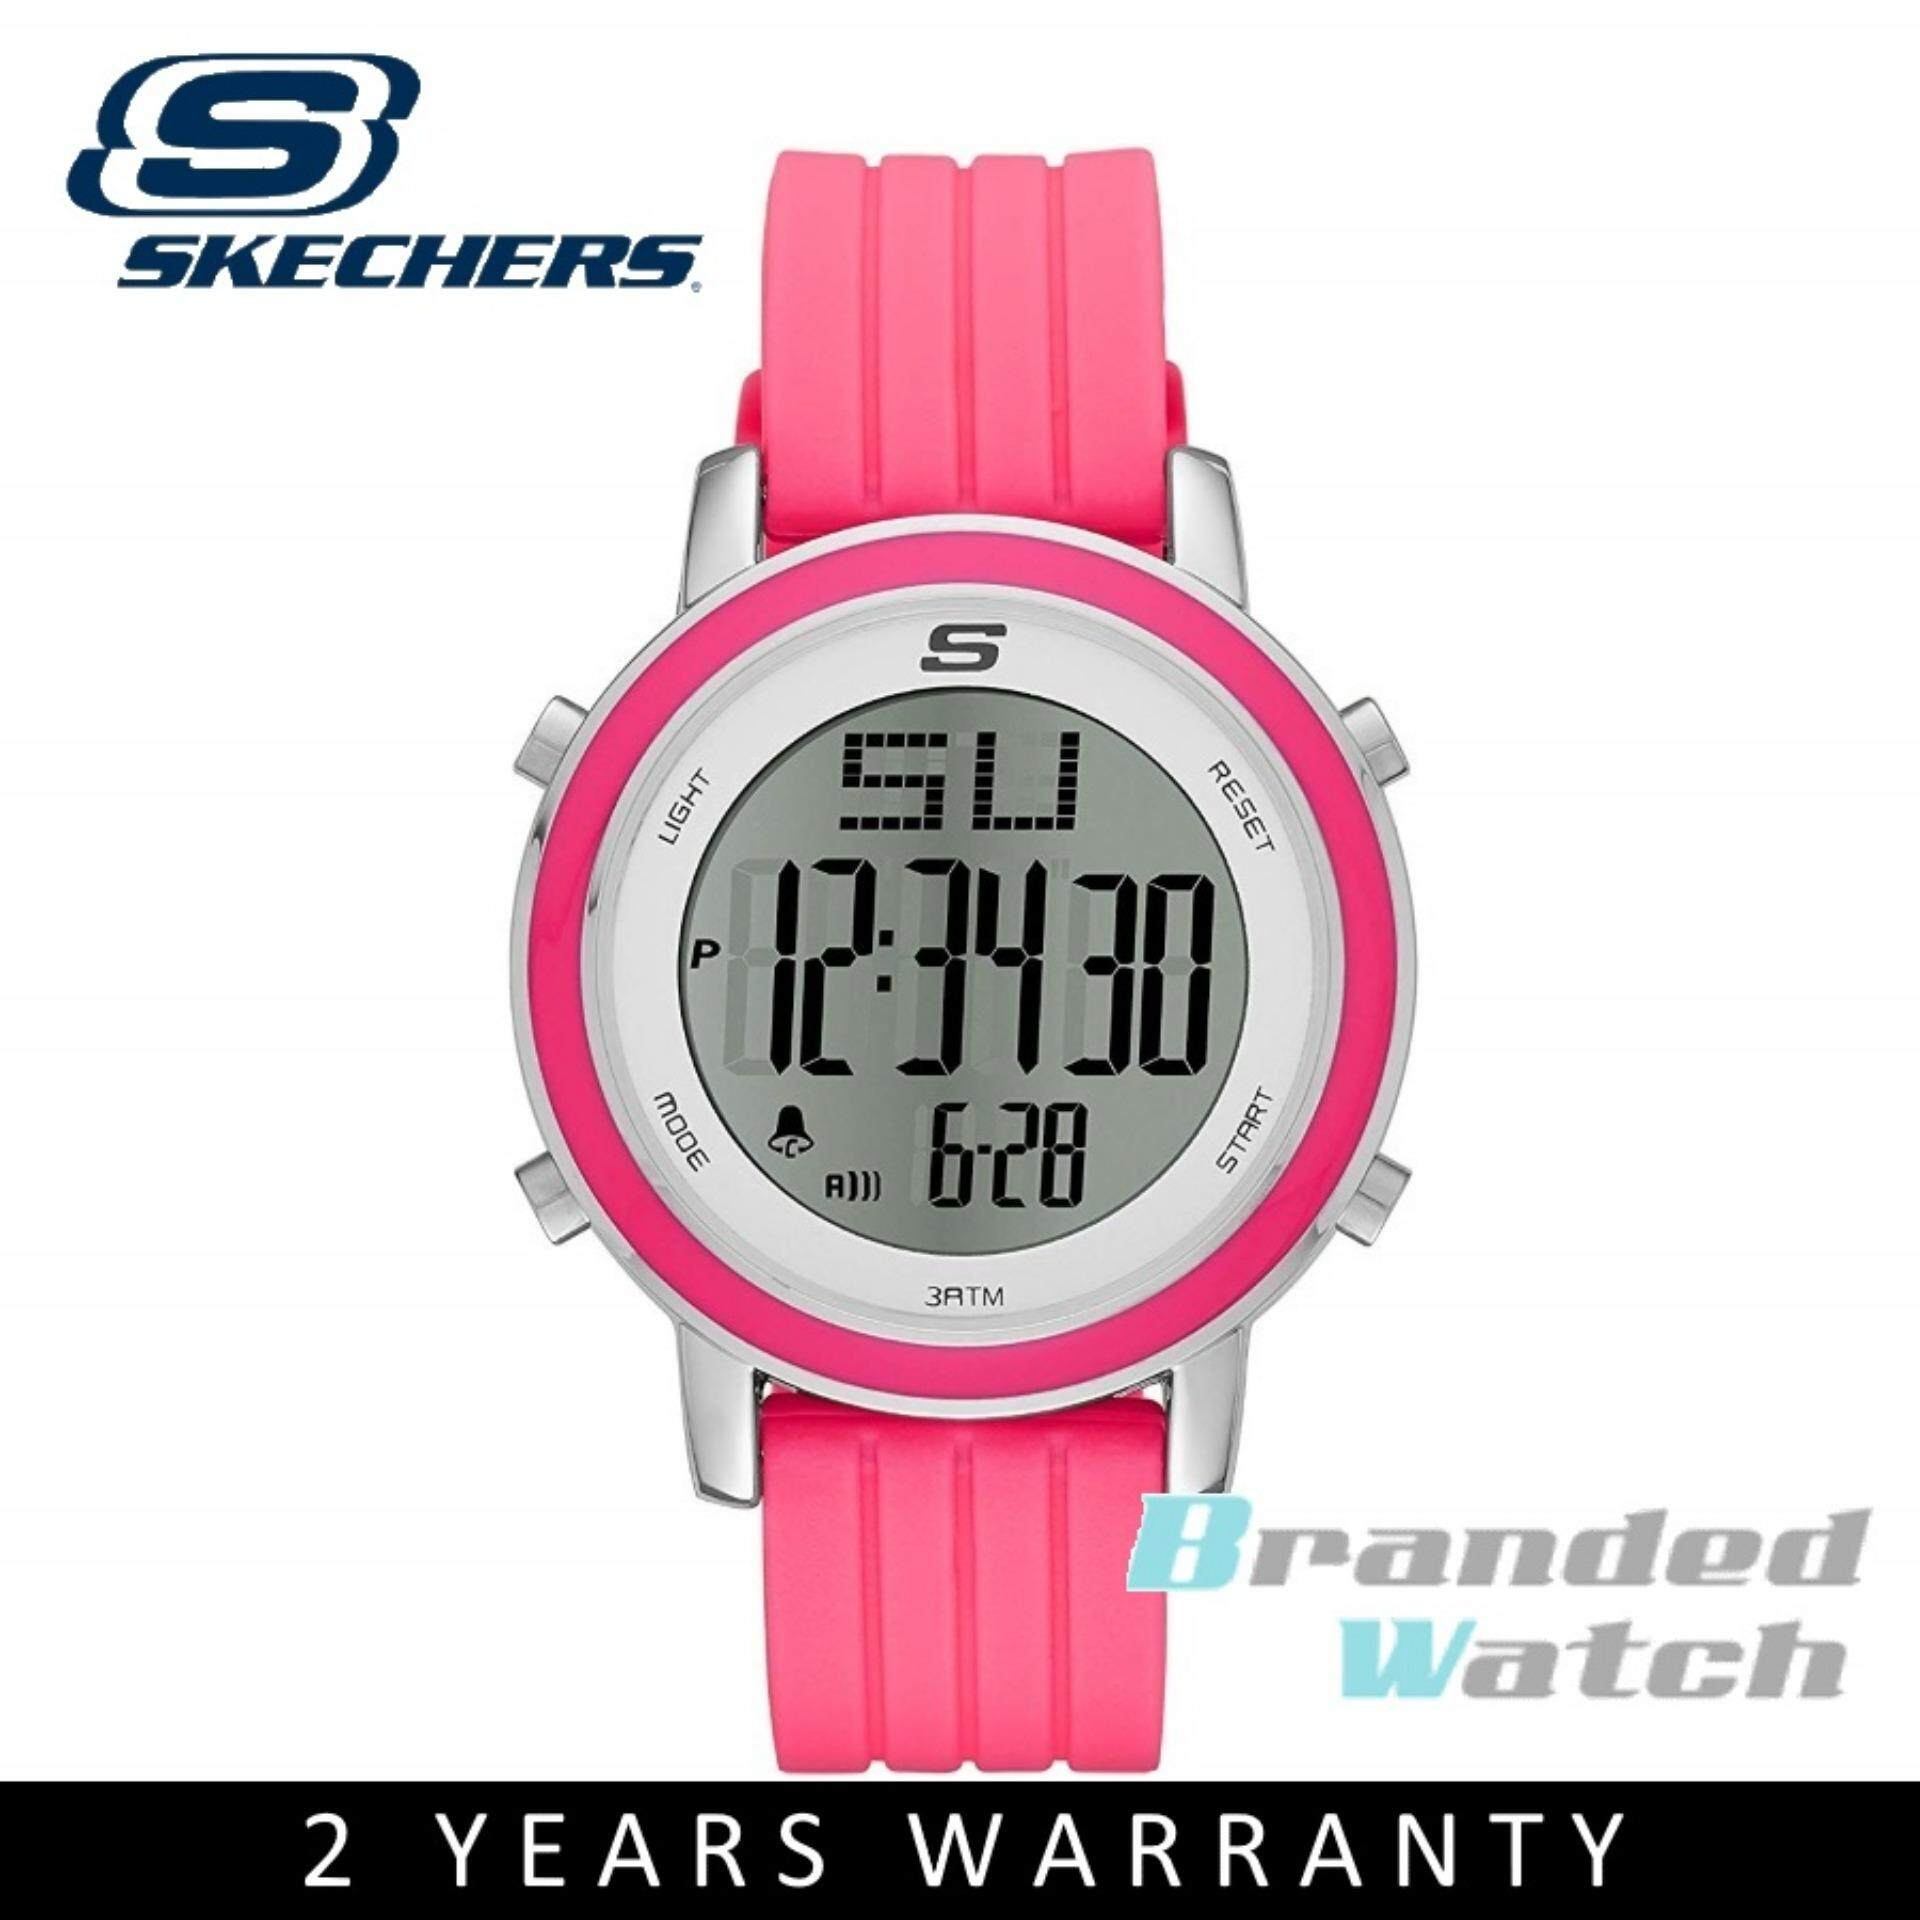 skechers watch manual